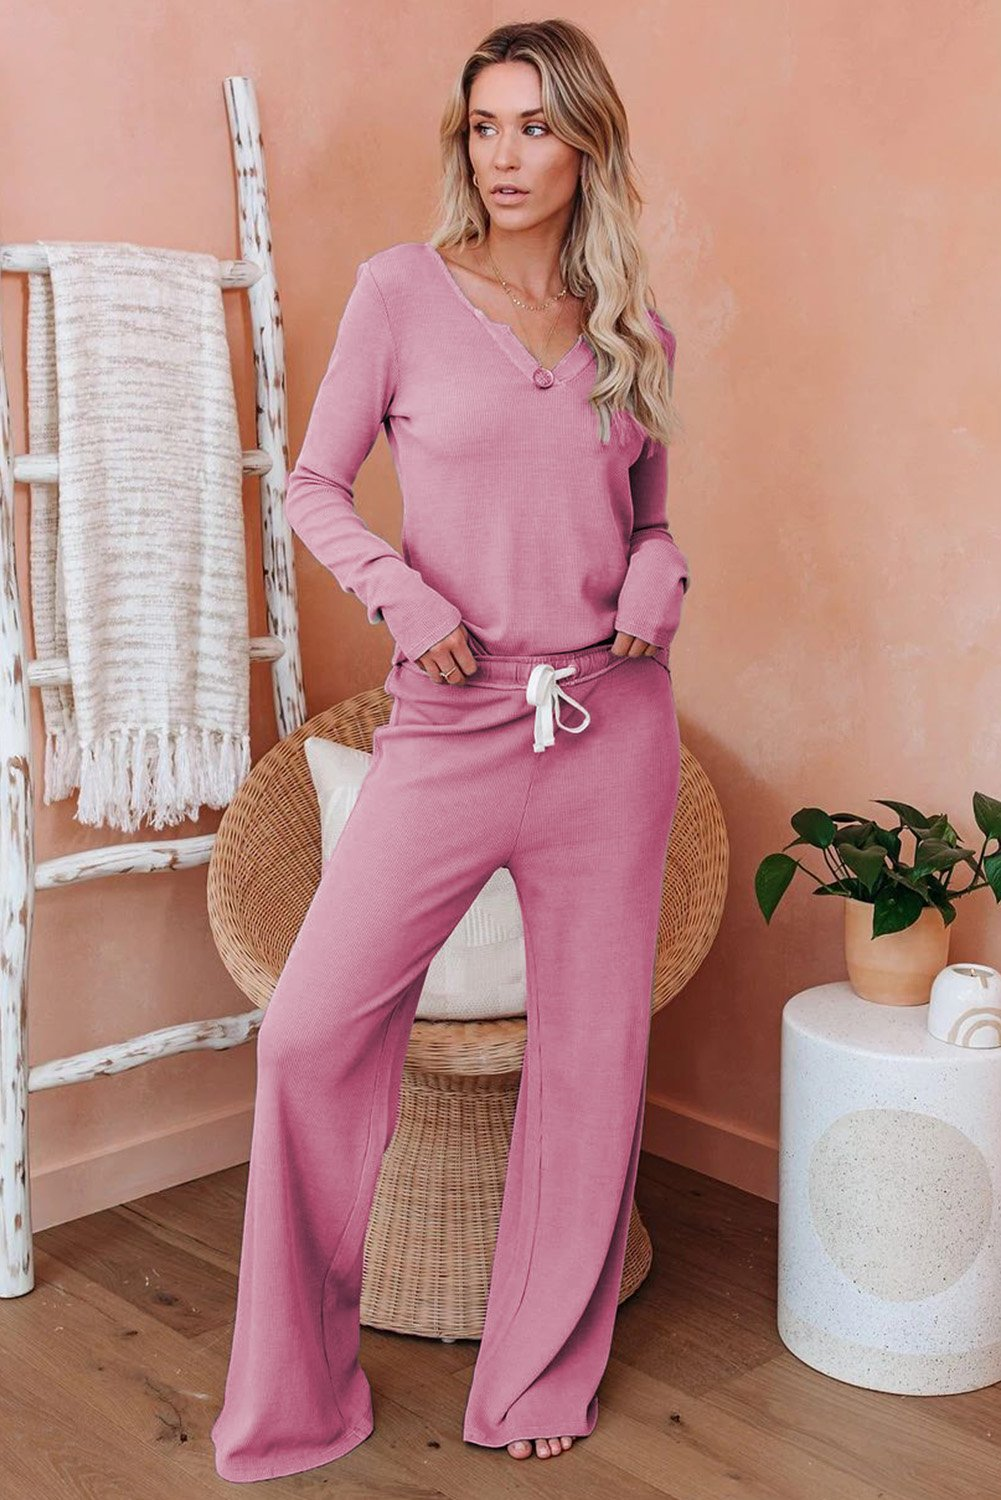 Pink Cotton Modal Long Sleeve Shirt and Pants Loungewear